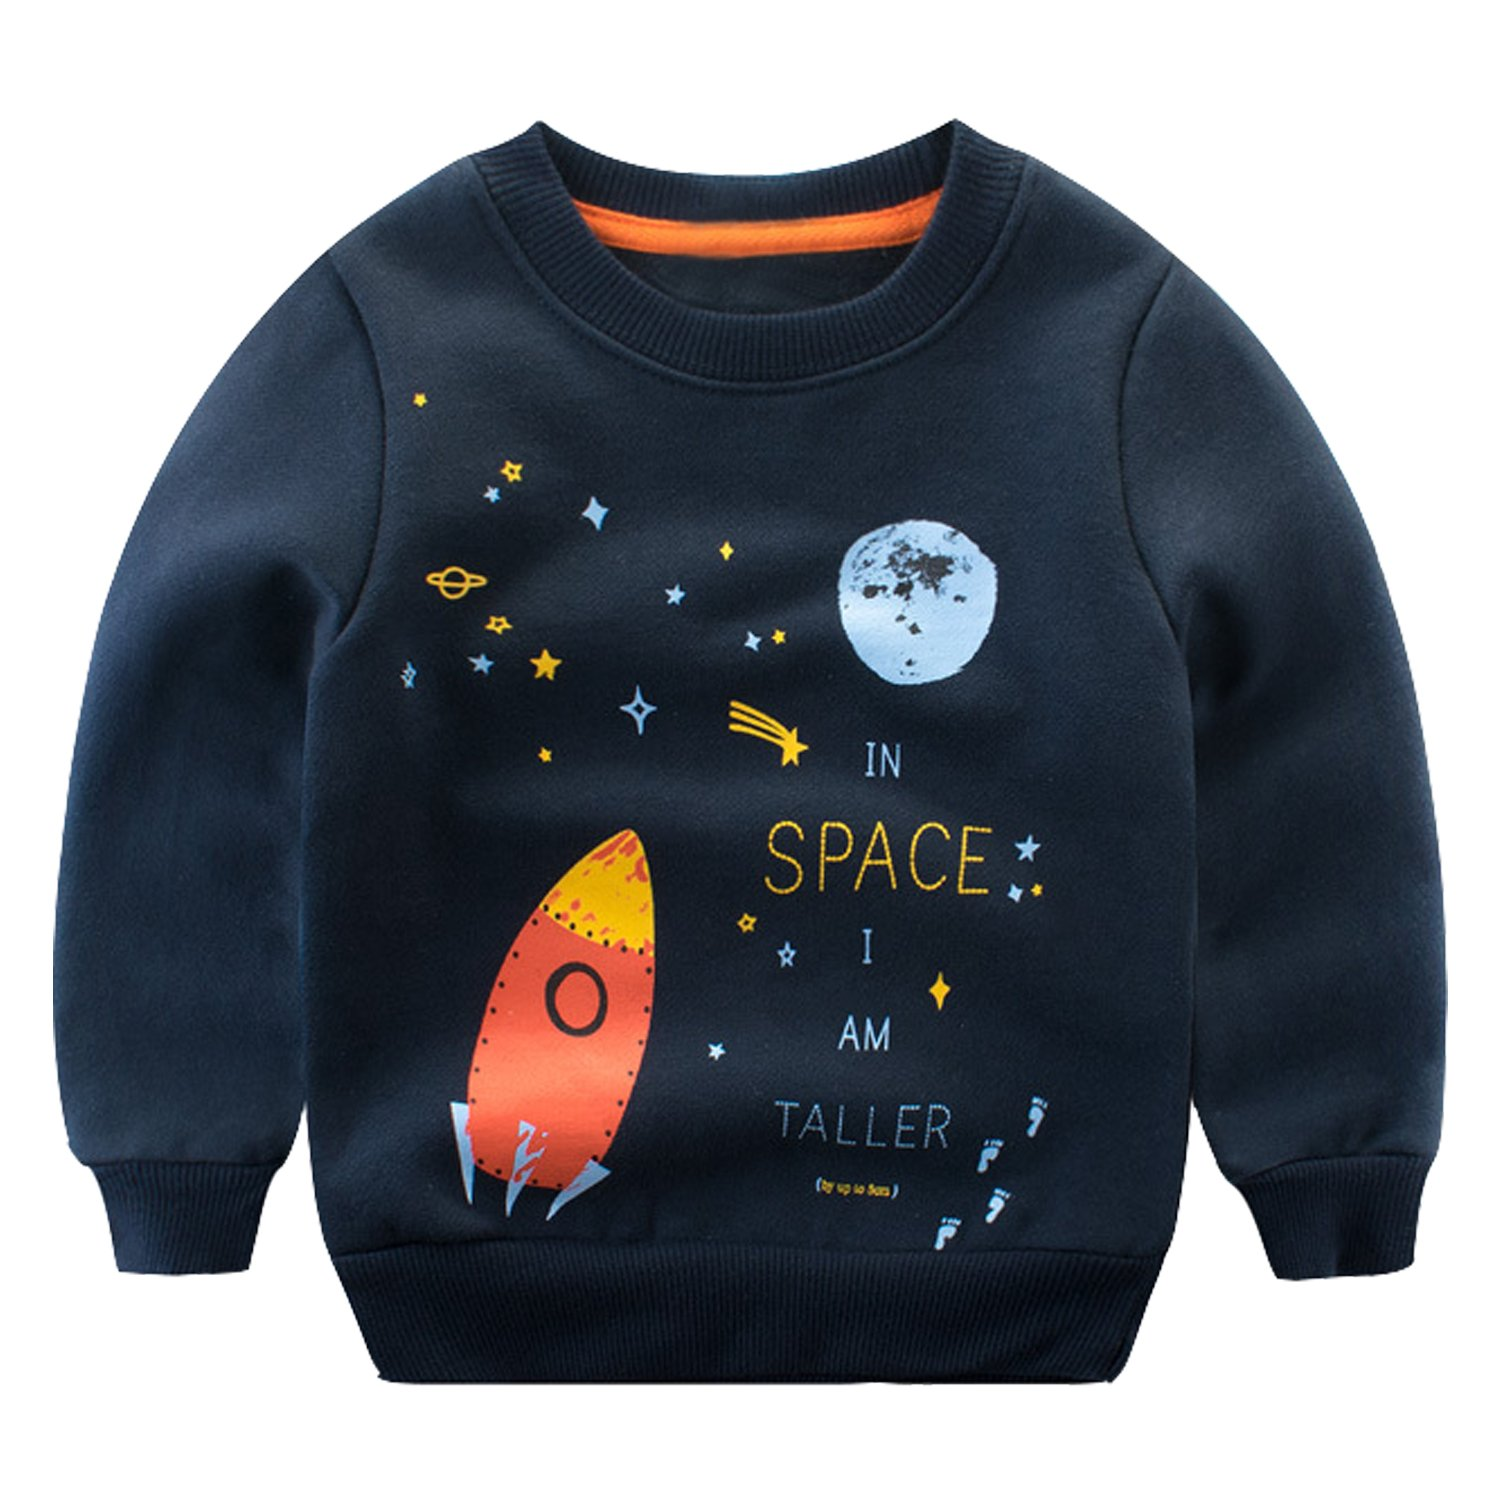 Baby Boys Girls Pullover Sweatshirt Long Sleeve T-Shirt Crew Neck Tops Evelin LEE LFA0532-CA